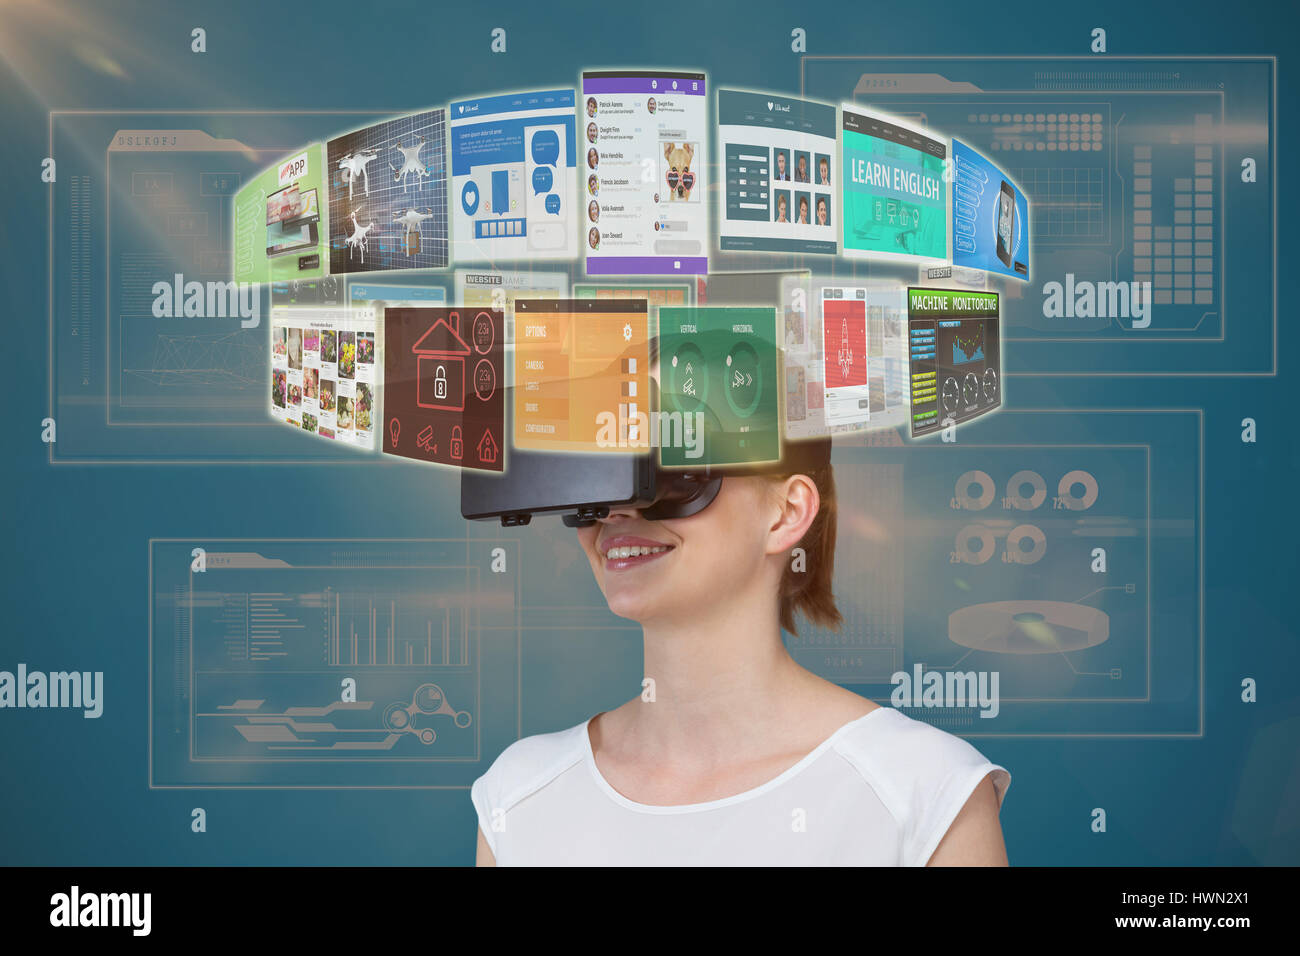 Happy woman experiencing virtual reality headset against business interface 3d - Stock Image